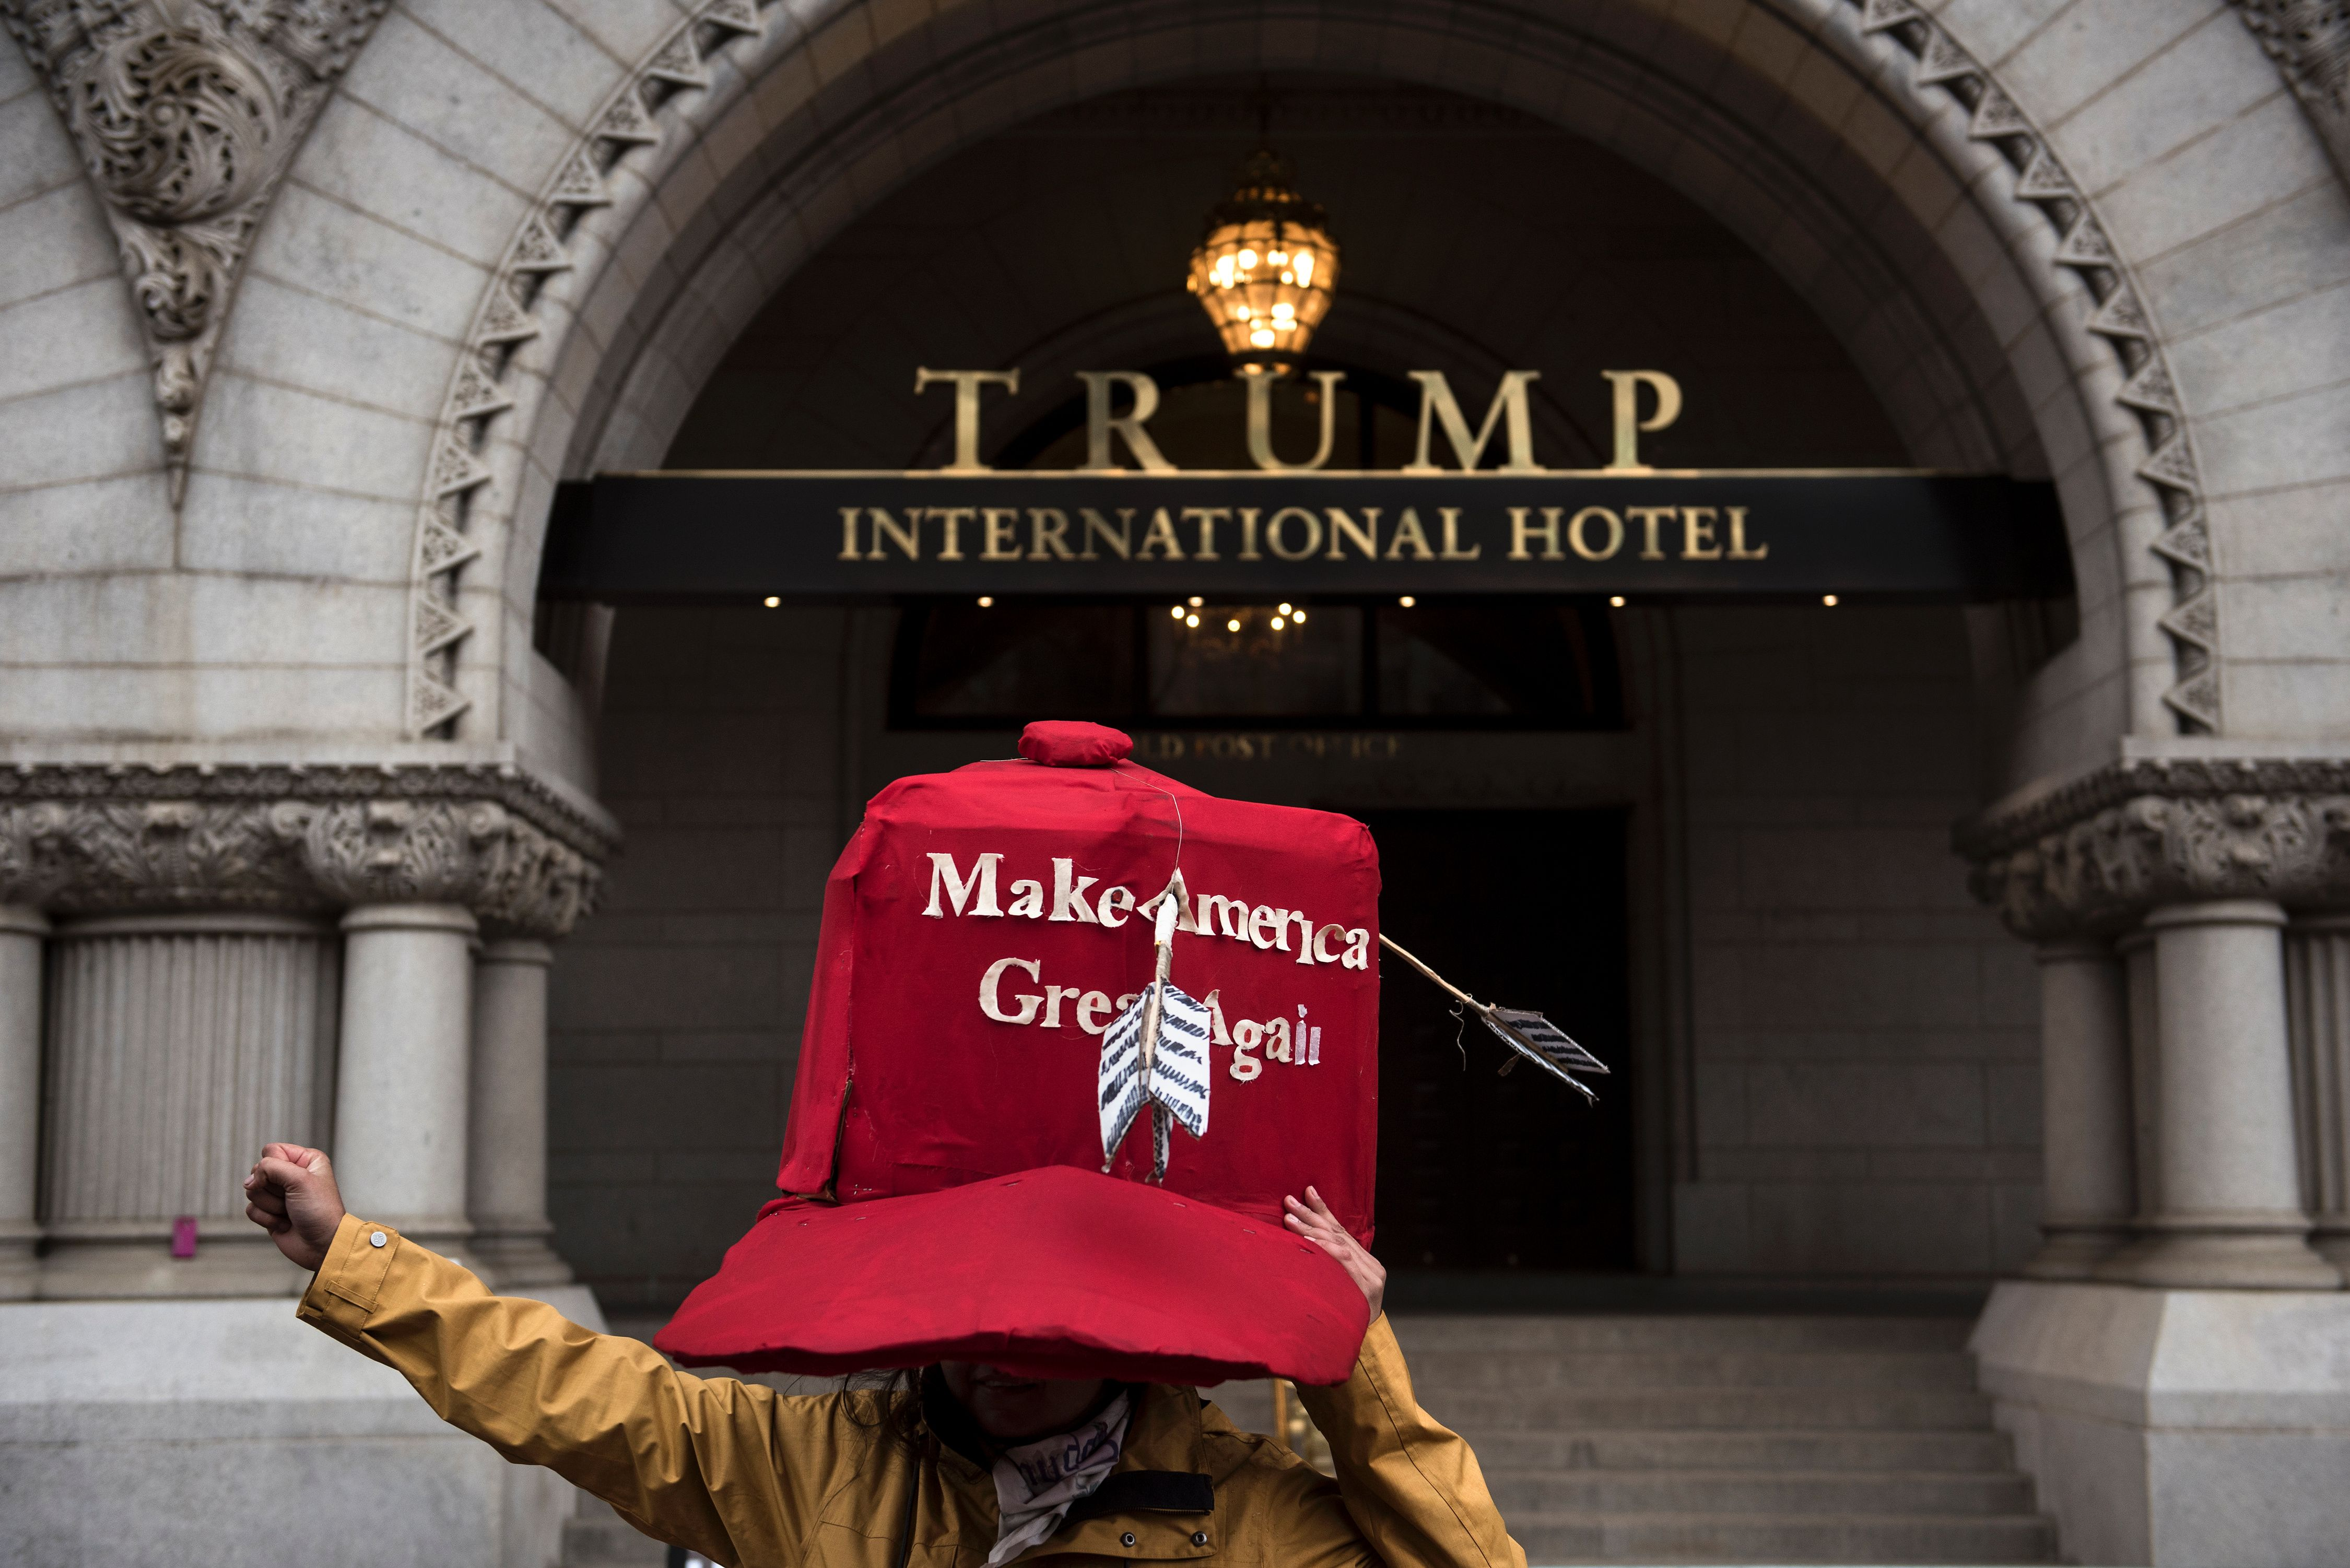 An activist stands in front of Trump International Hotel, one of the Donald Trump hotels